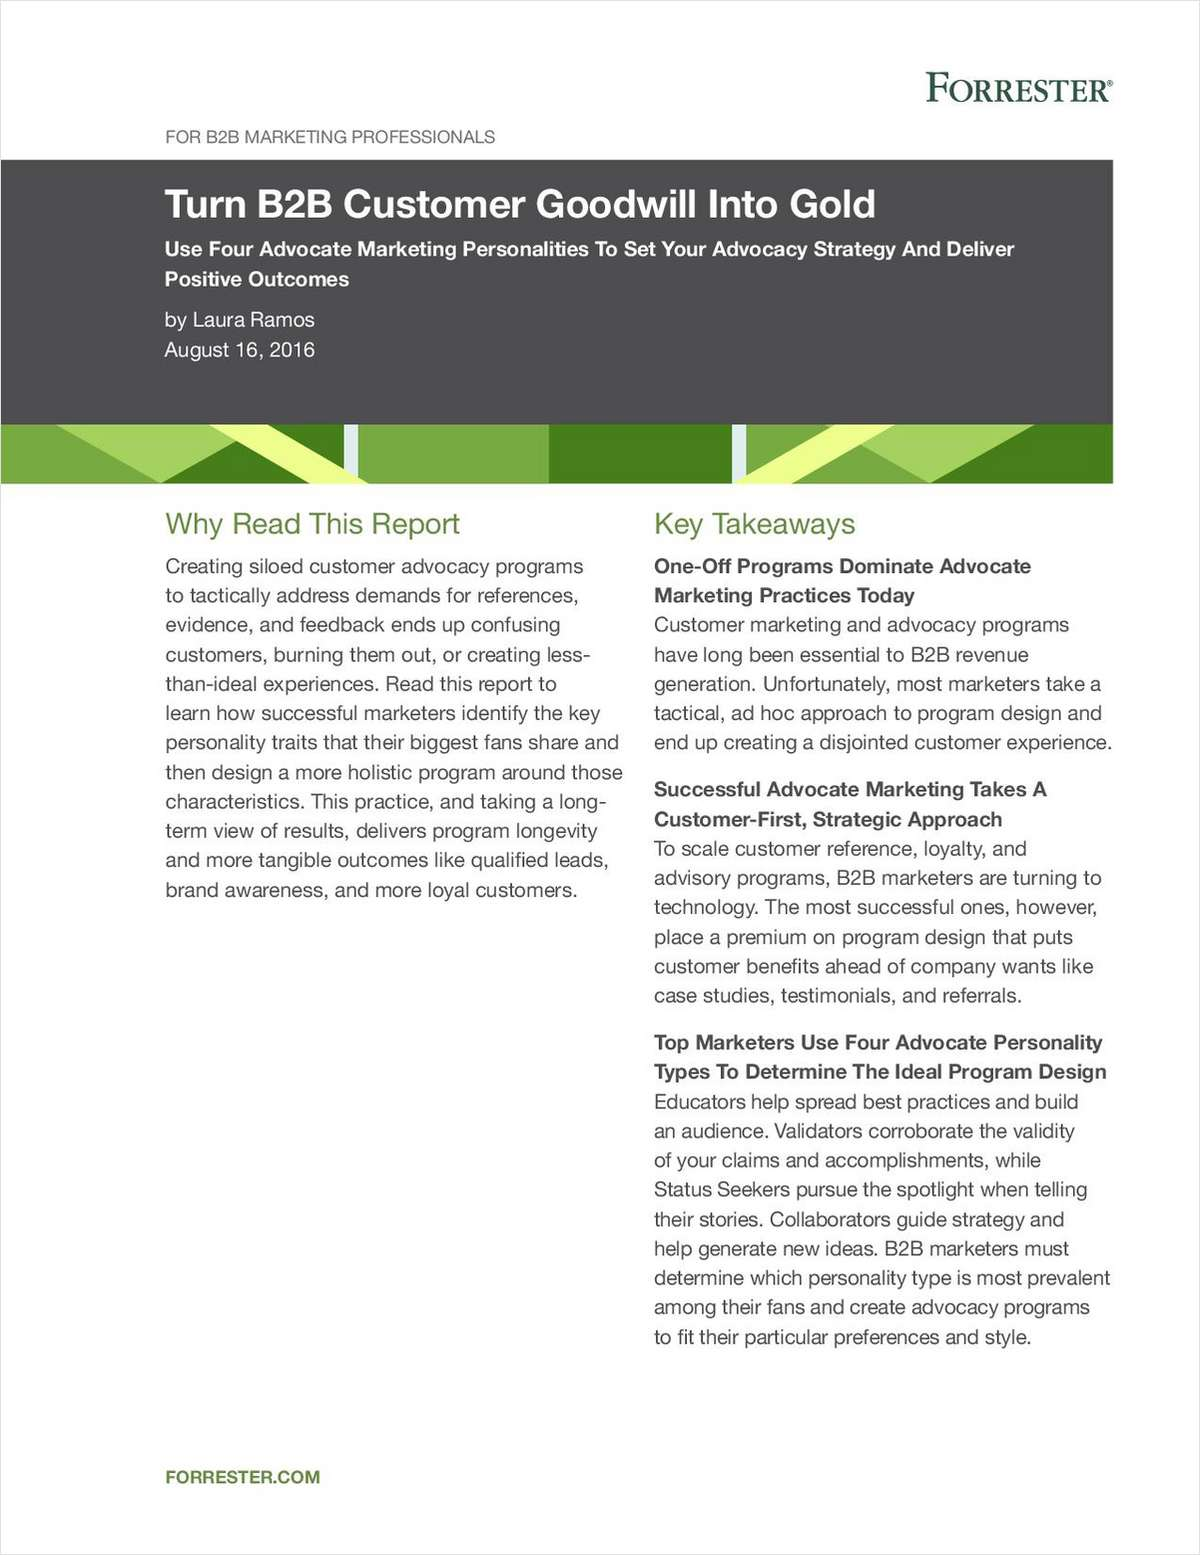 Forrester Report: Turn B2B Customer Goodwill Into Gold